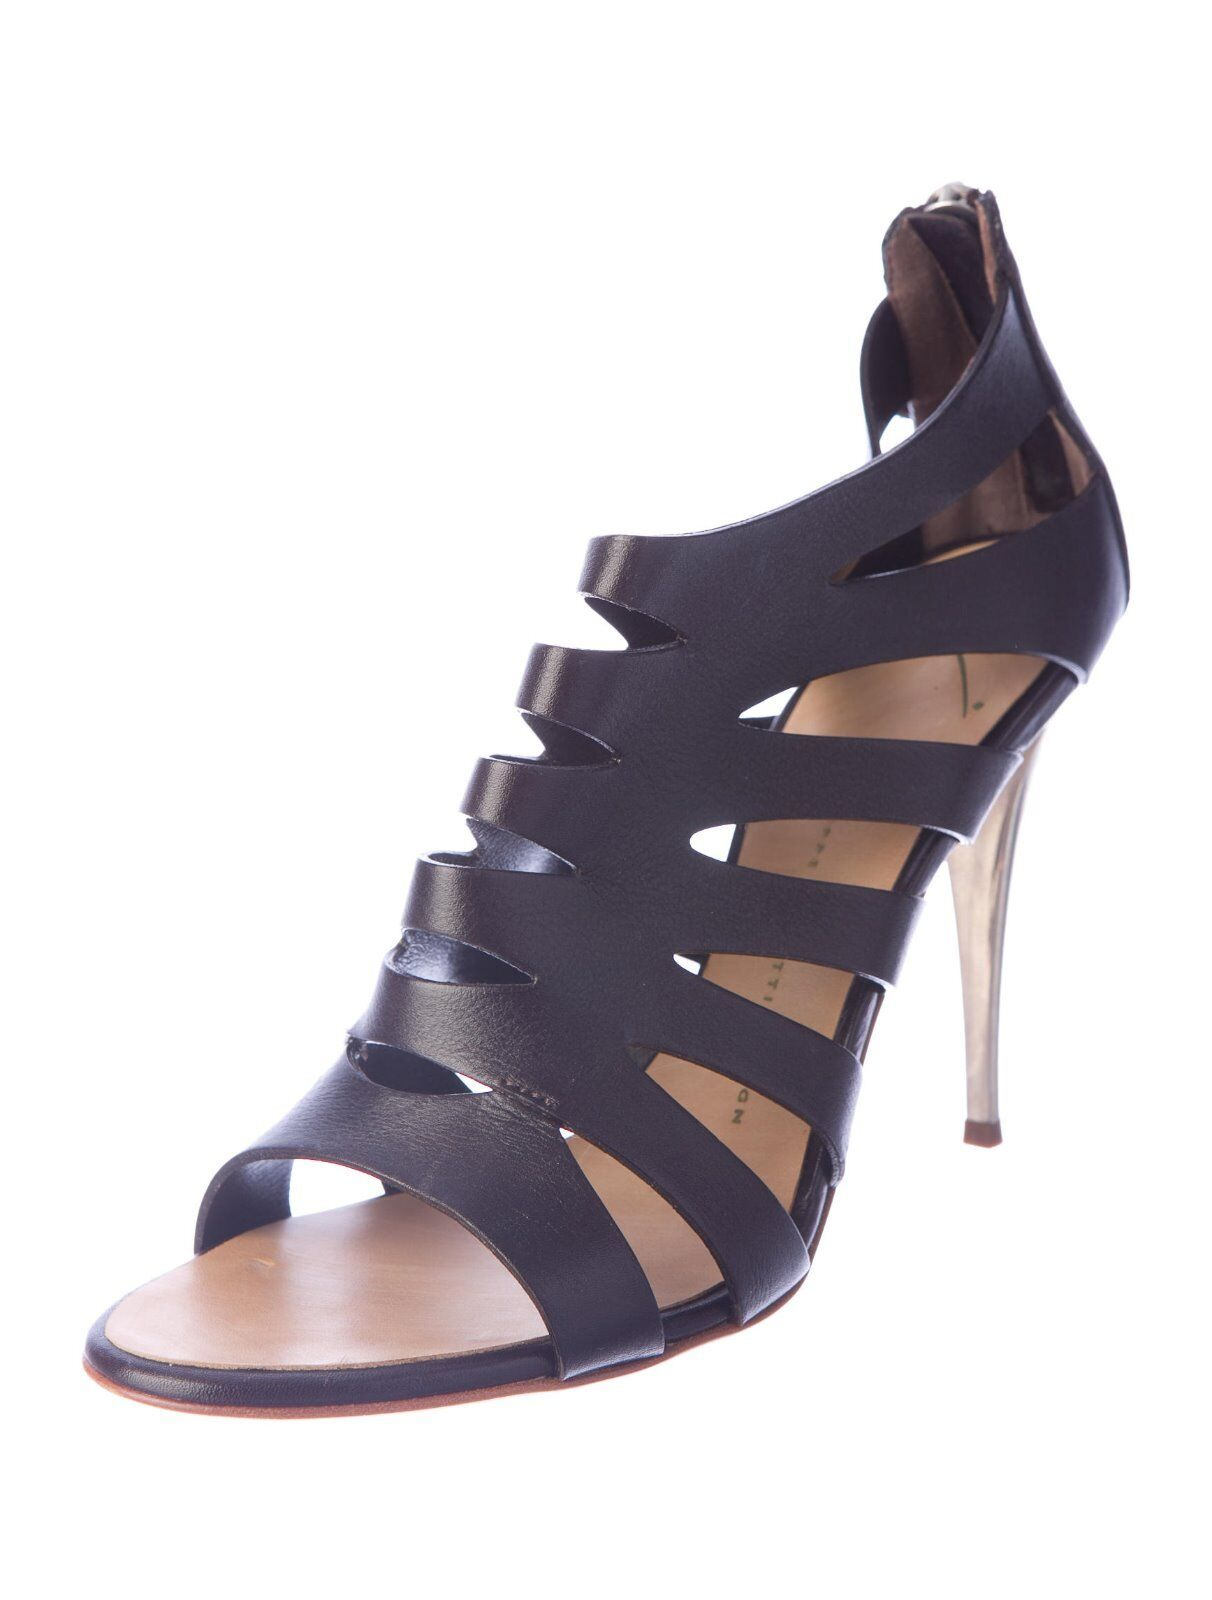 SPECTACULAR NEW SOLD OUT DARK BROWN GIUSEPPE ZANOTTI CAGE SANDALS